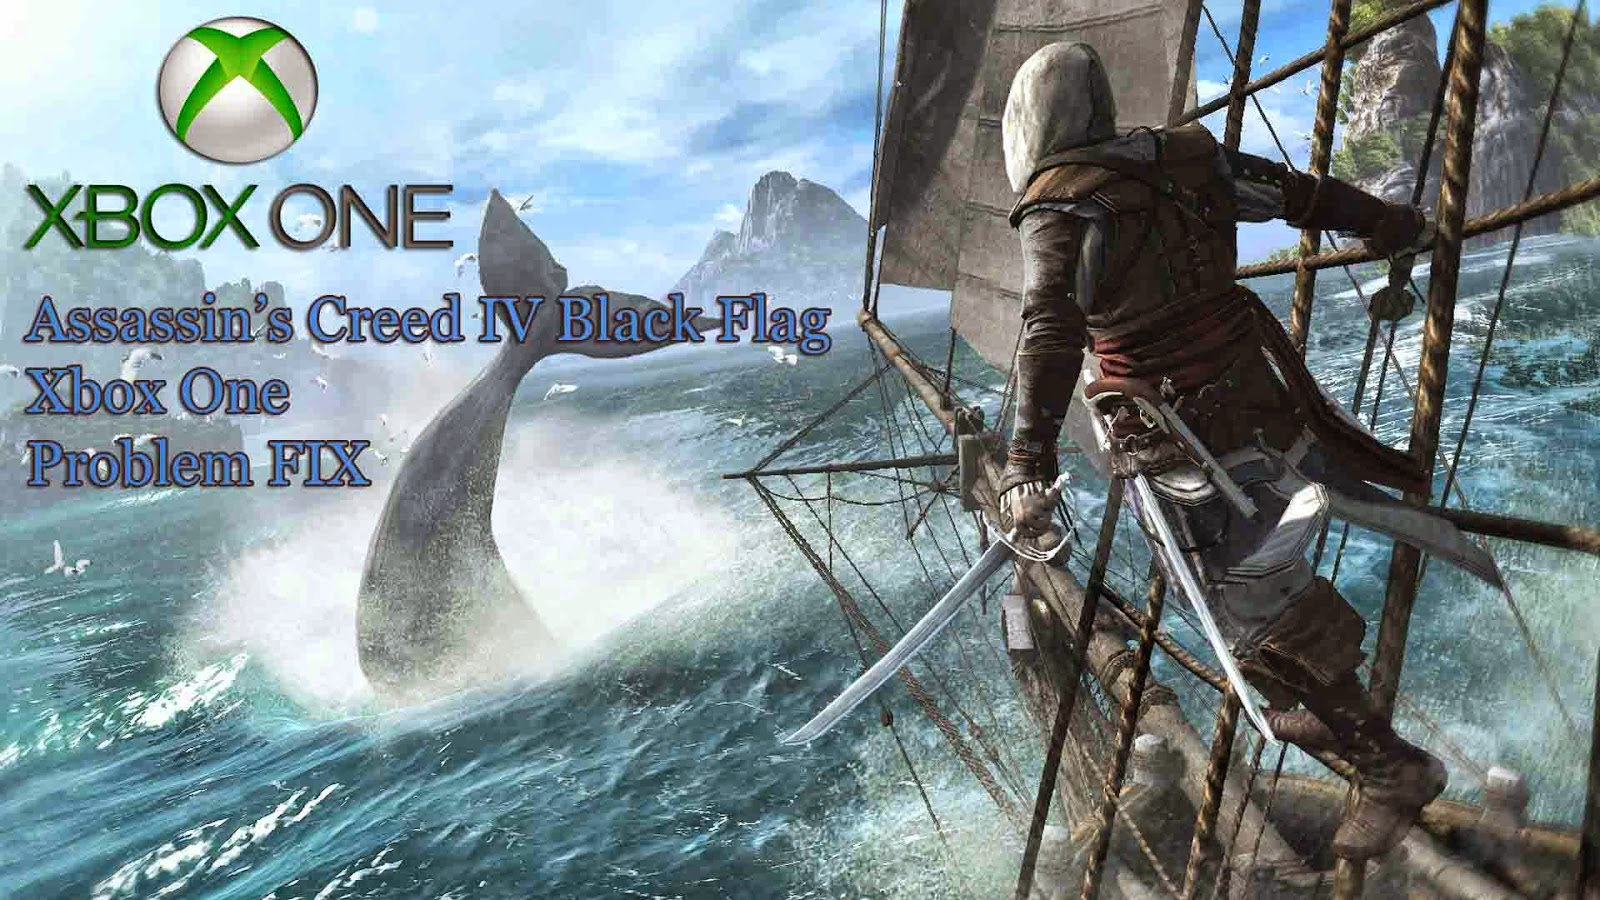 Assassin's Creed IV Black Flag Xbox One Issue Fix